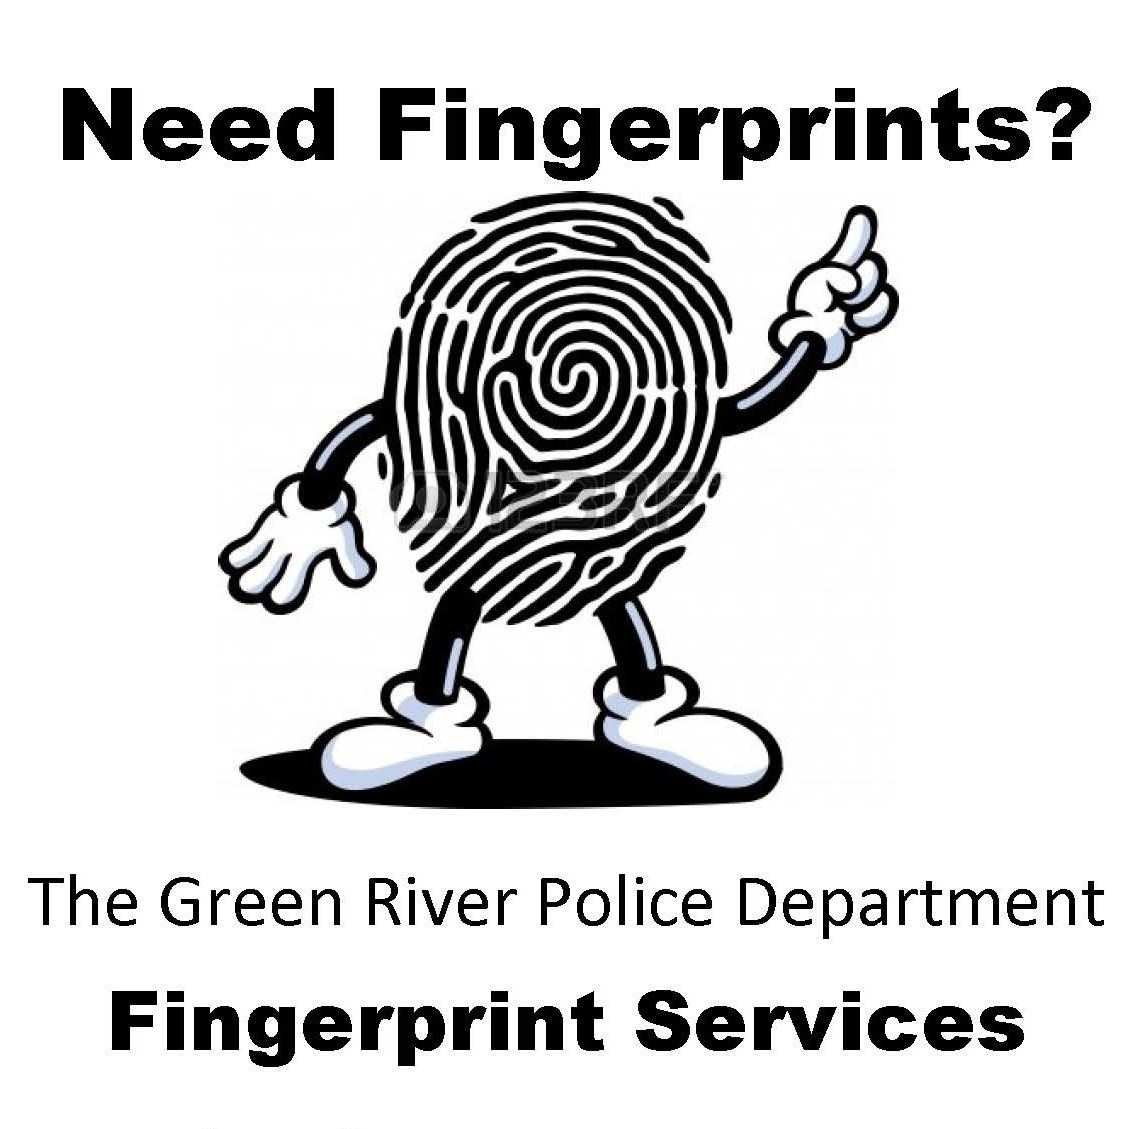 Fingerprints Services pic